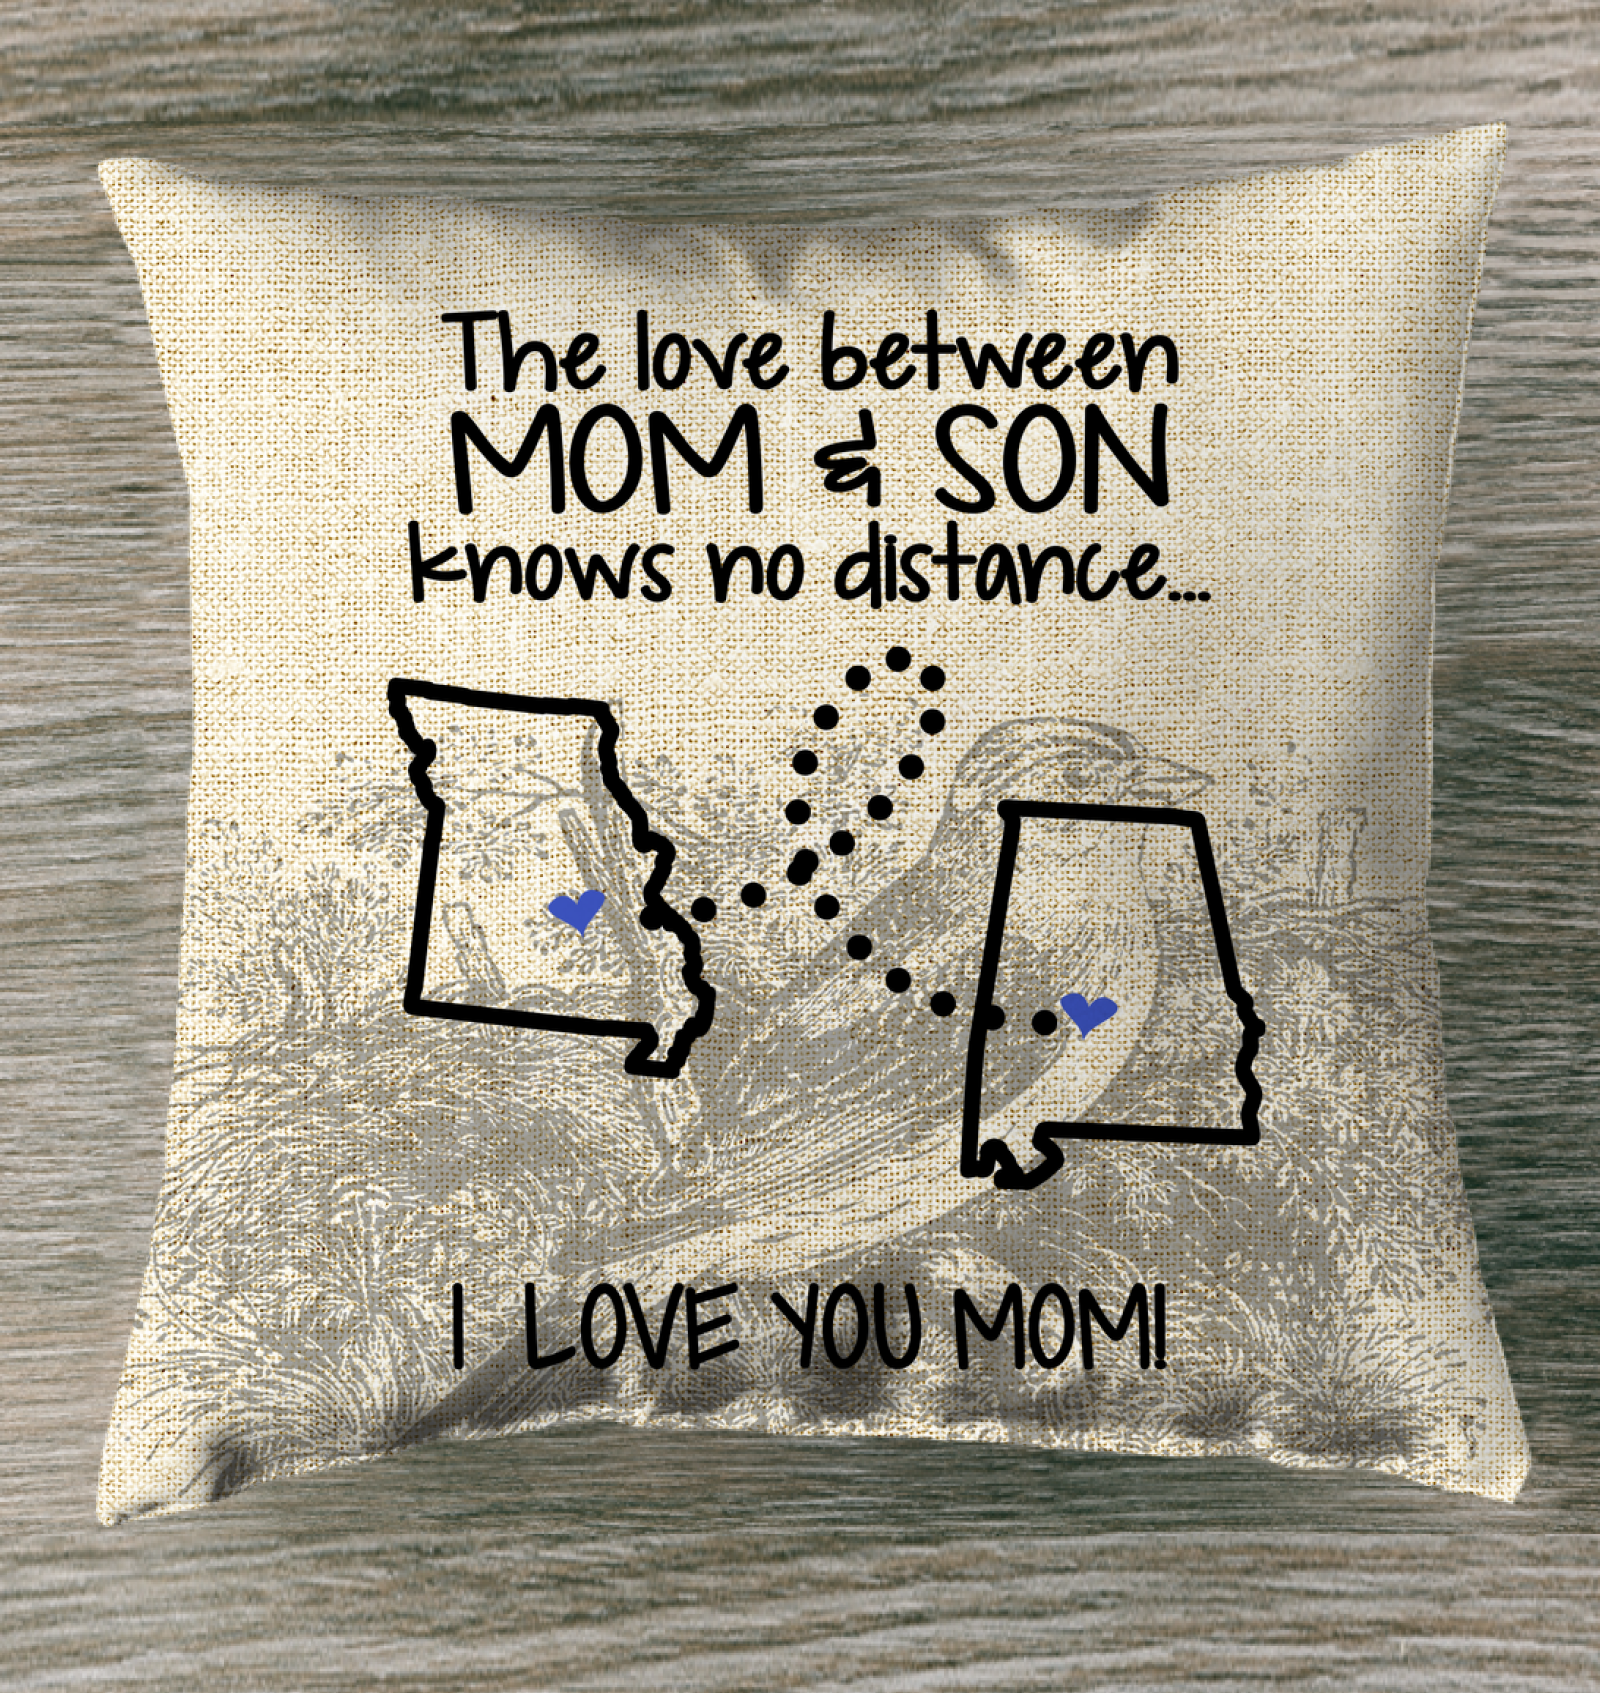 ALABAMA MISSOURI THE LOVE MOM AND SON KNOWS NO DISTANCE